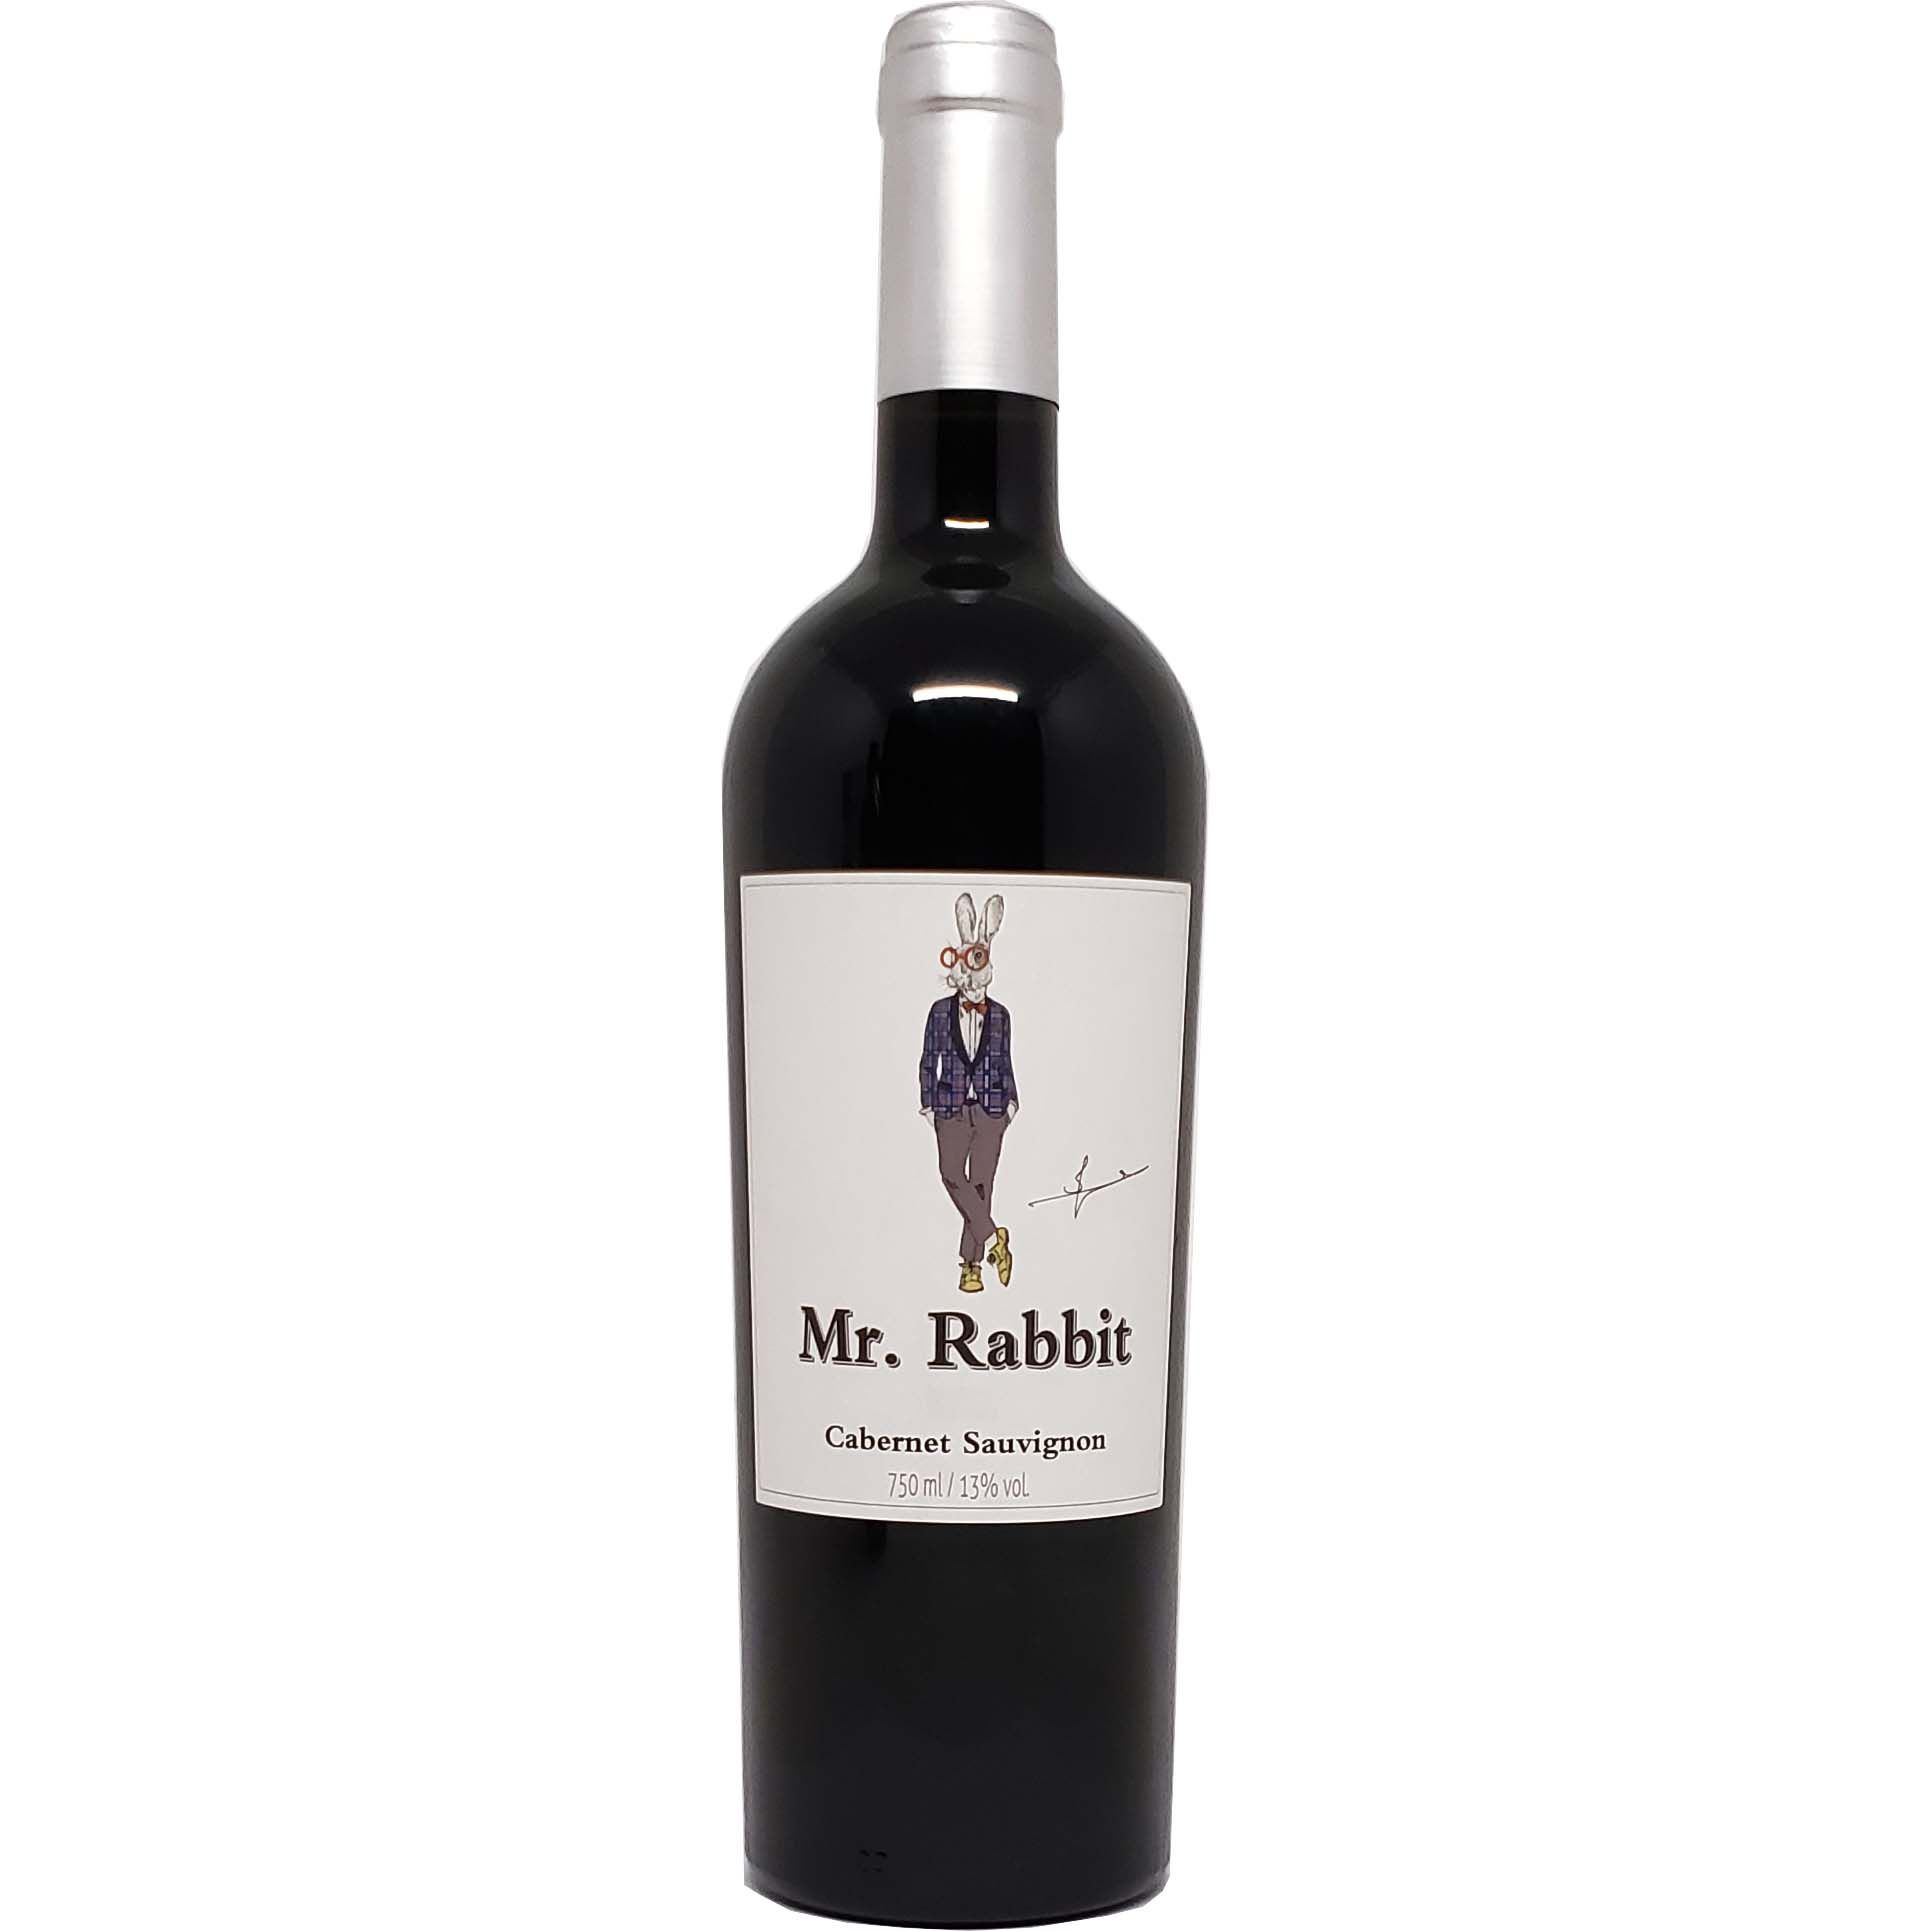 Vinho Mr. Rabbit Cabernet Sauvignon - 750ml -